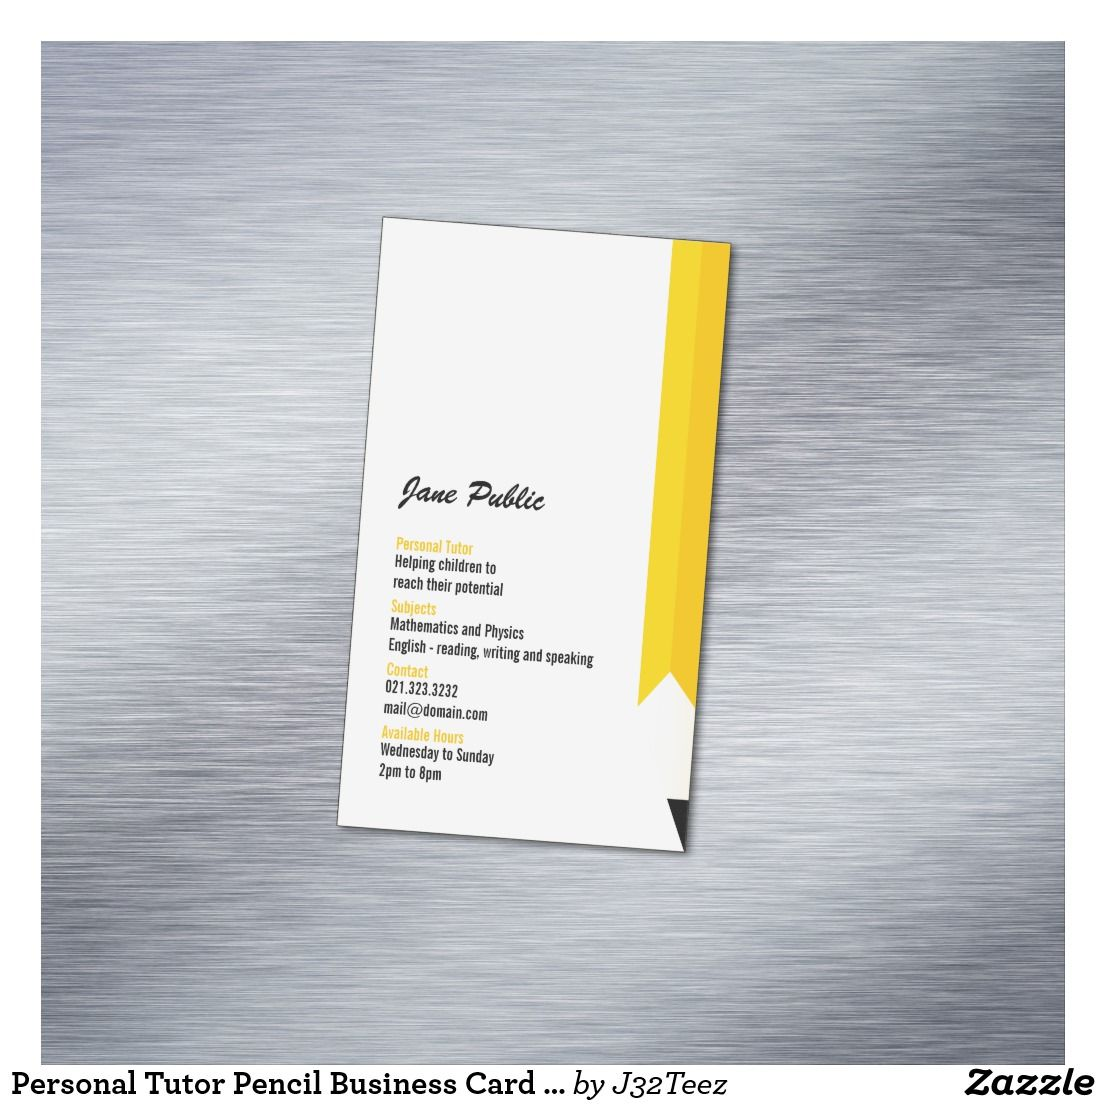 Personal Tutor Pencil Business Card Magnets | Business cards, Card ...